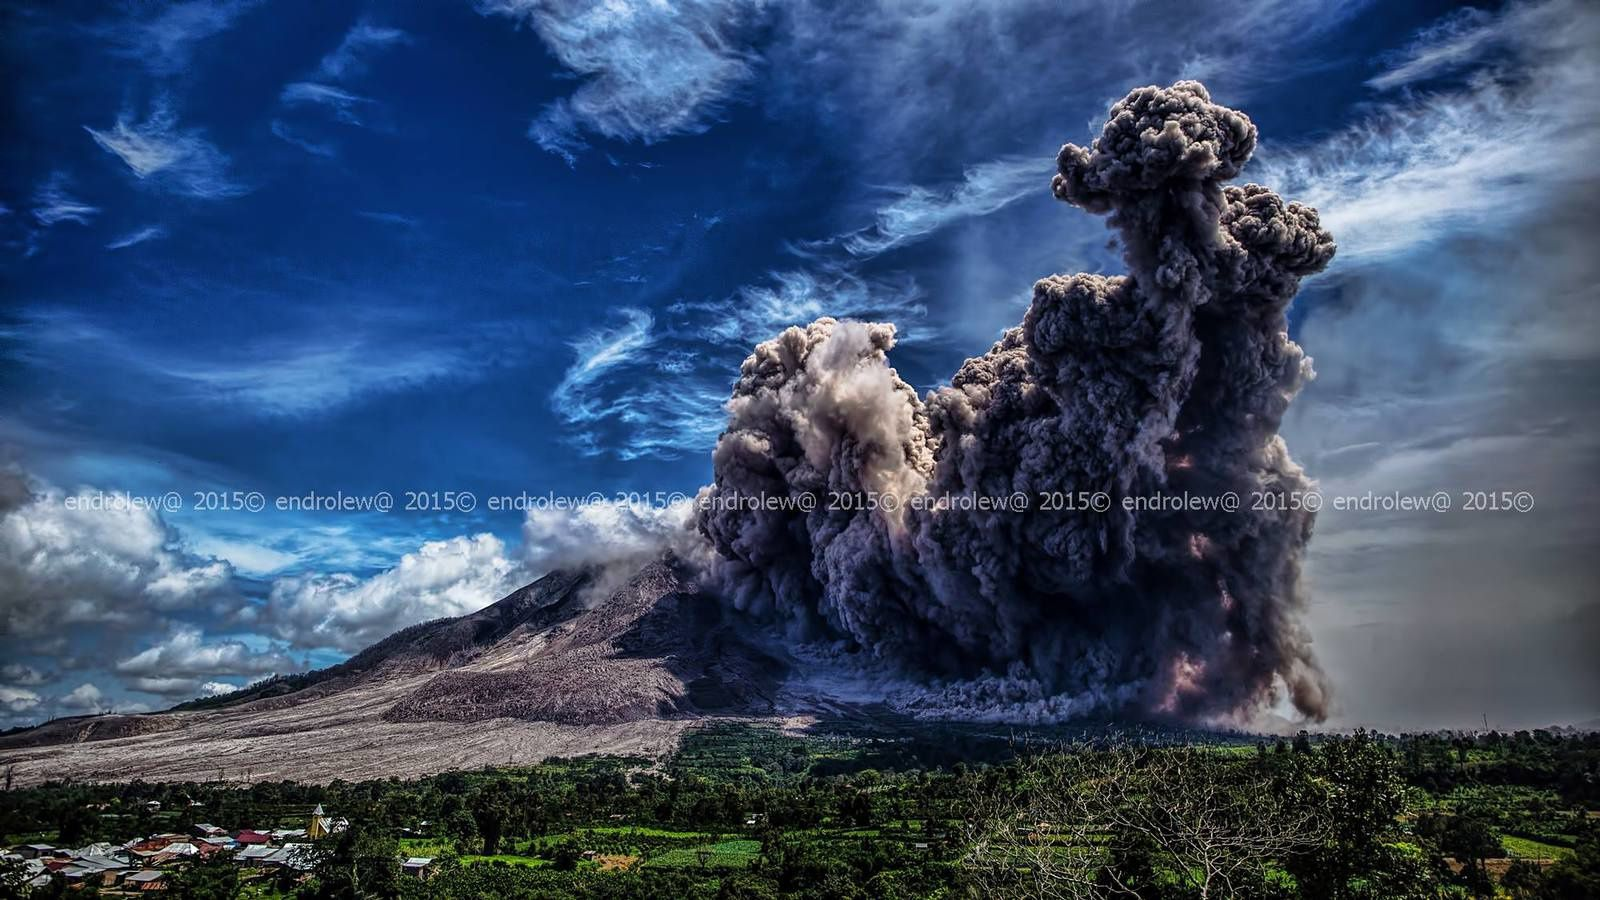 Sinabung - coulée pyroclastique du 19.06.2015 / 11h42 -  photo endrolew@